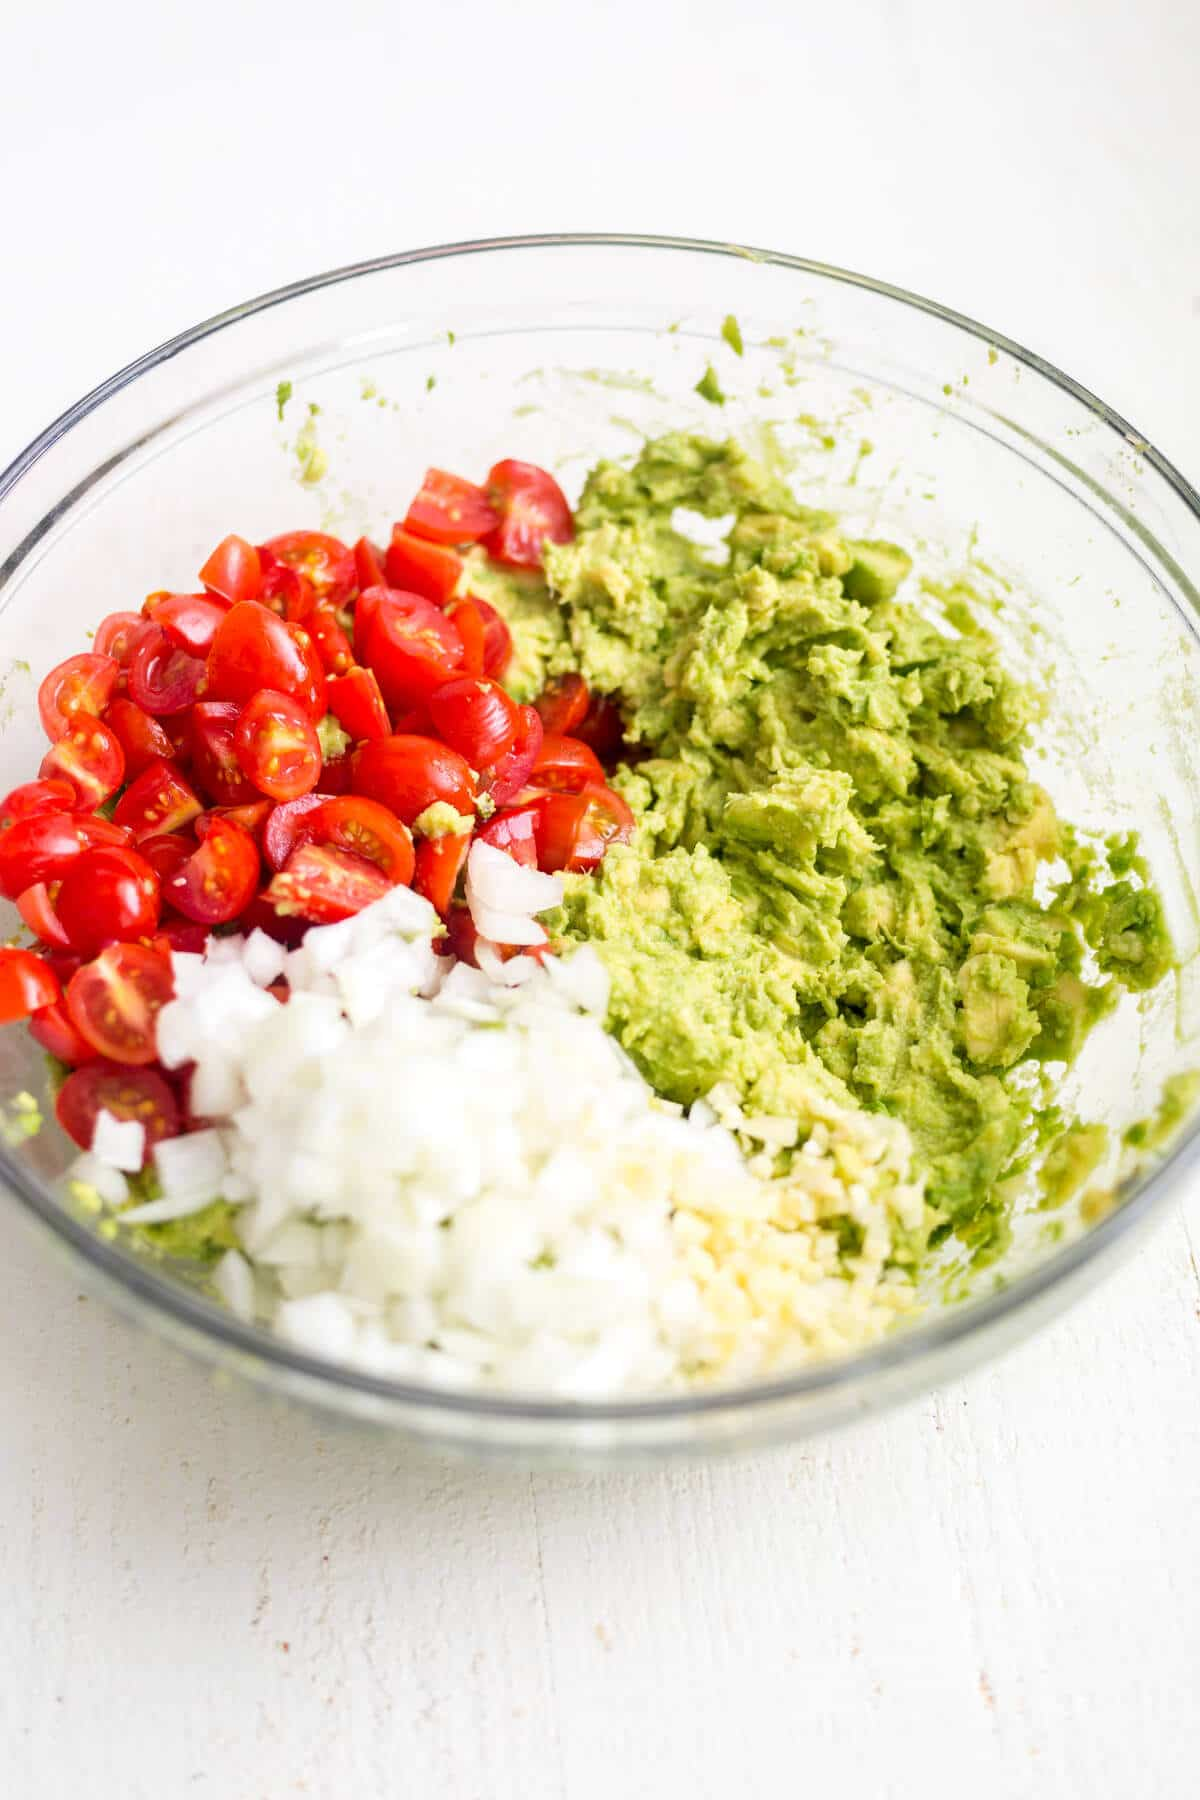 healthy guacamole ingredients in a glass bowl